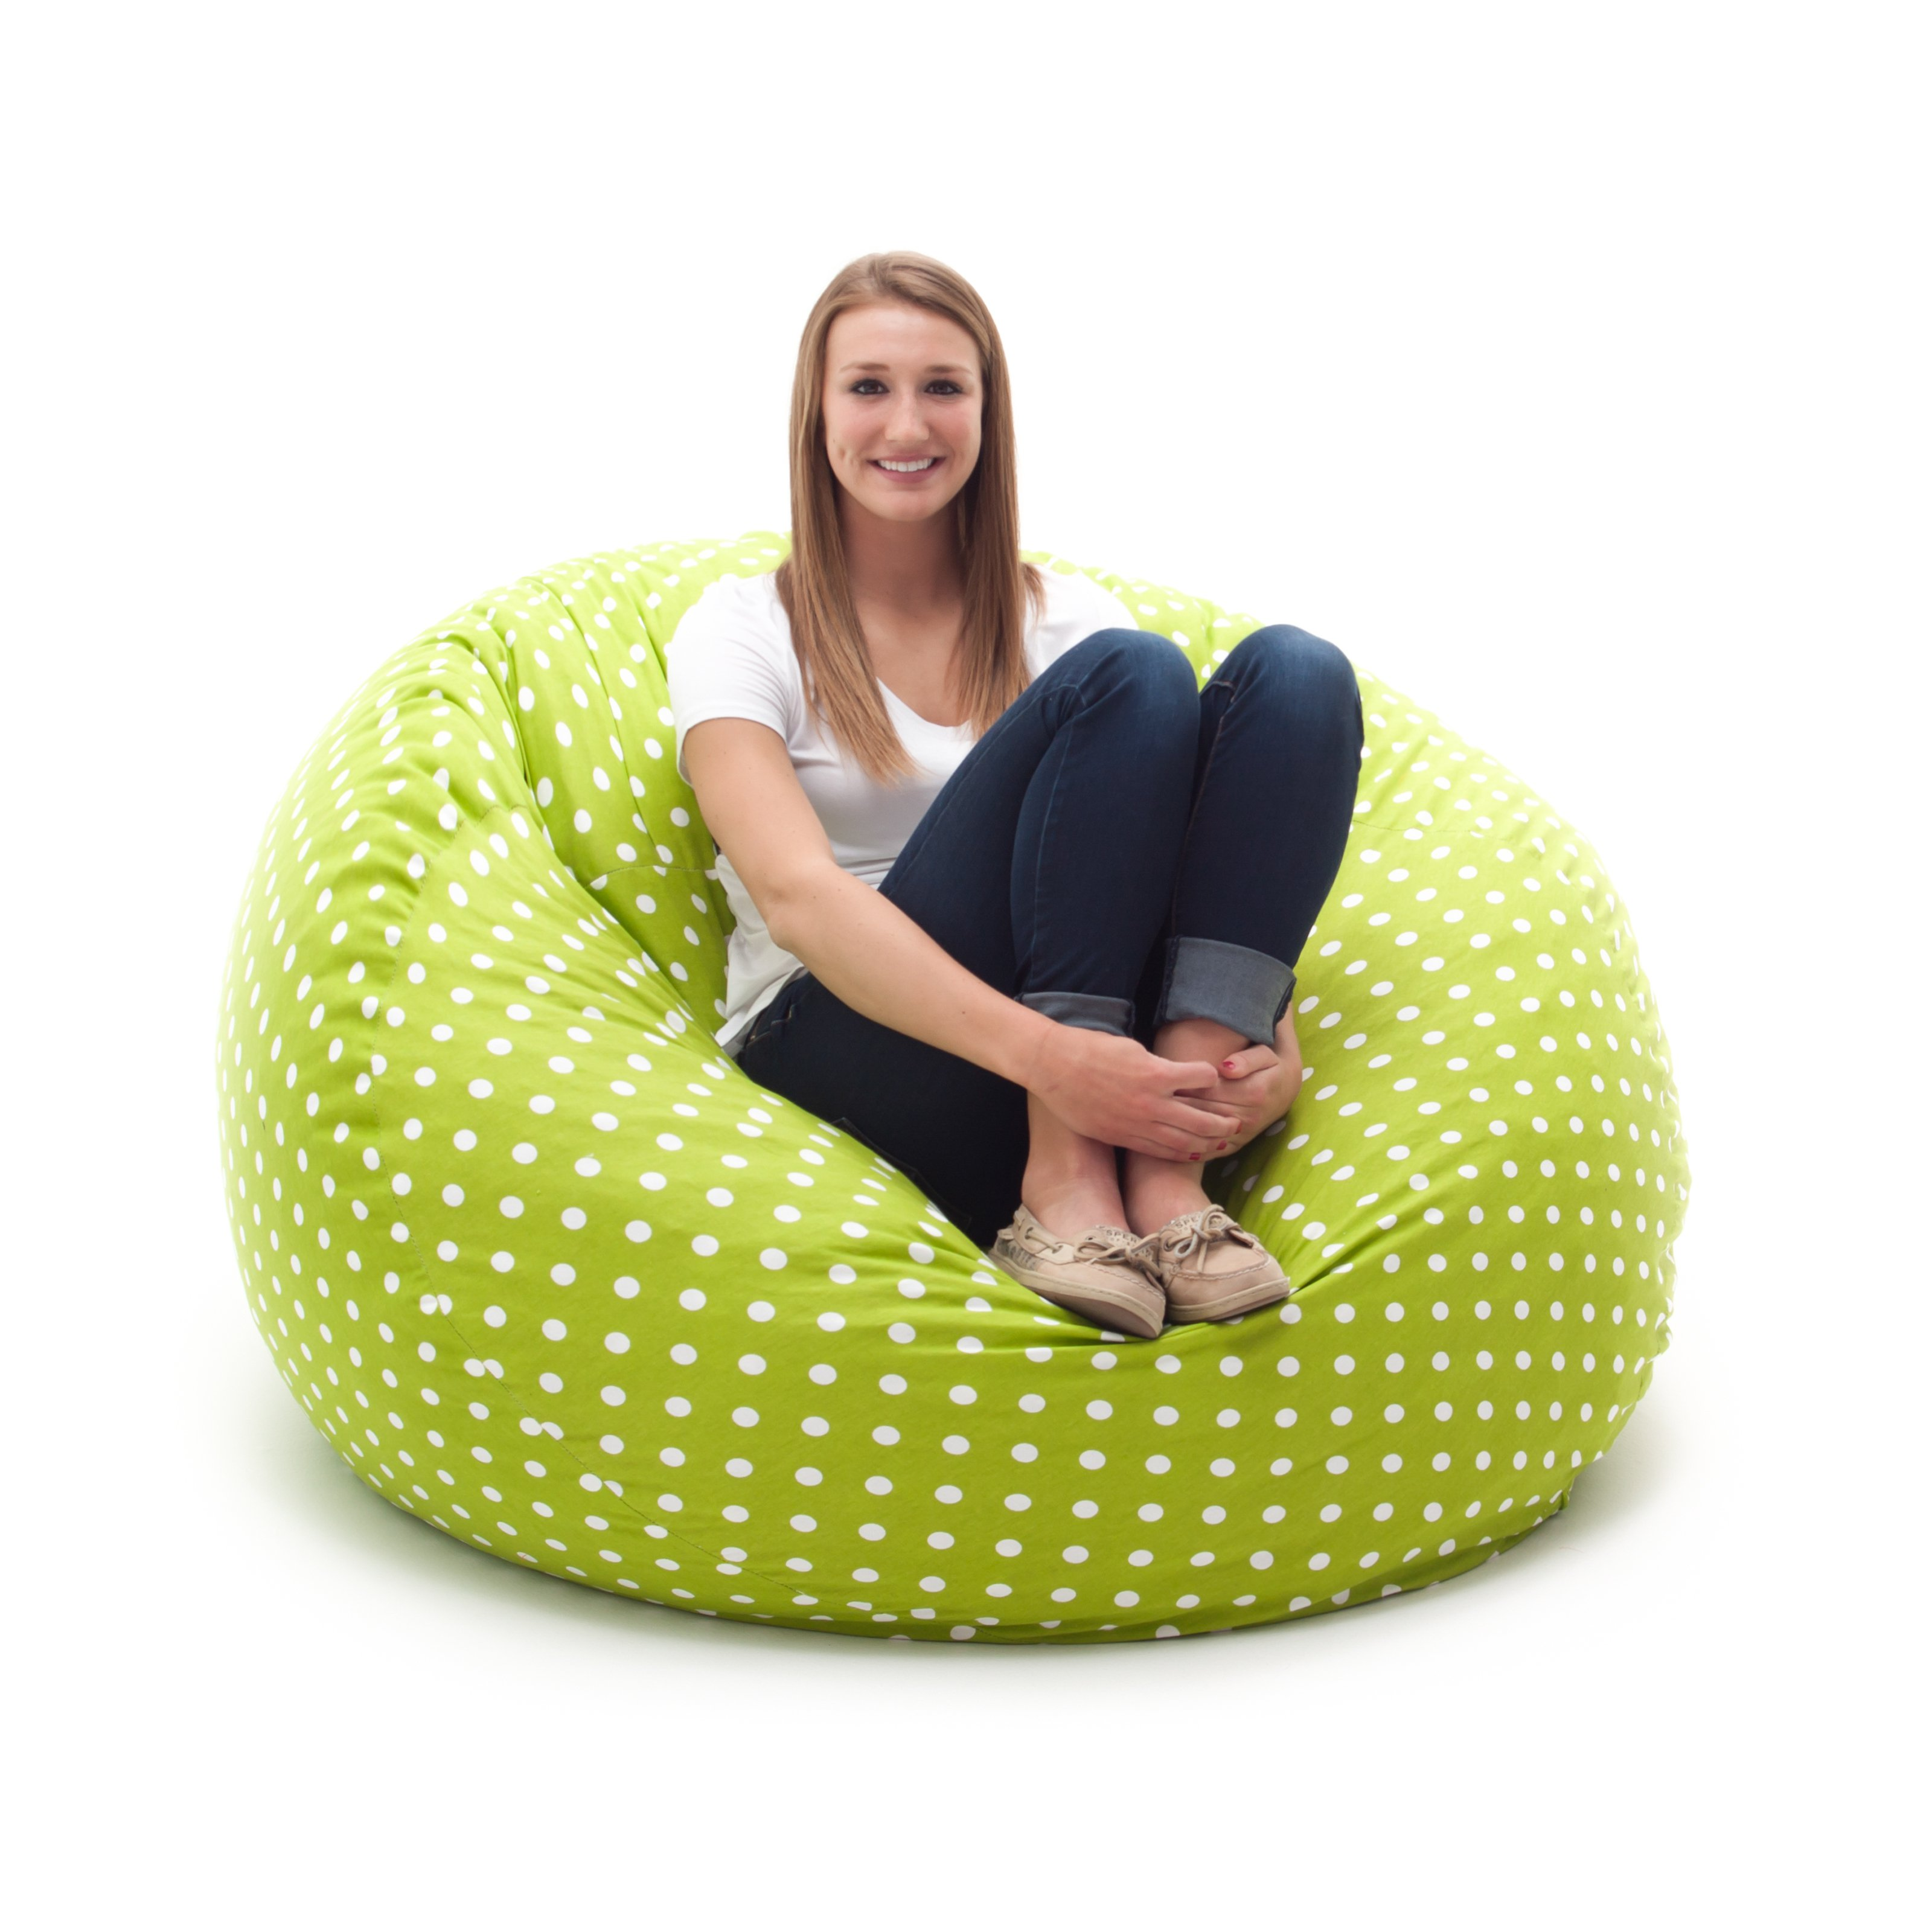 FUF 4 ft. Twill Bean Bag Lounger - Green with Small White Dots